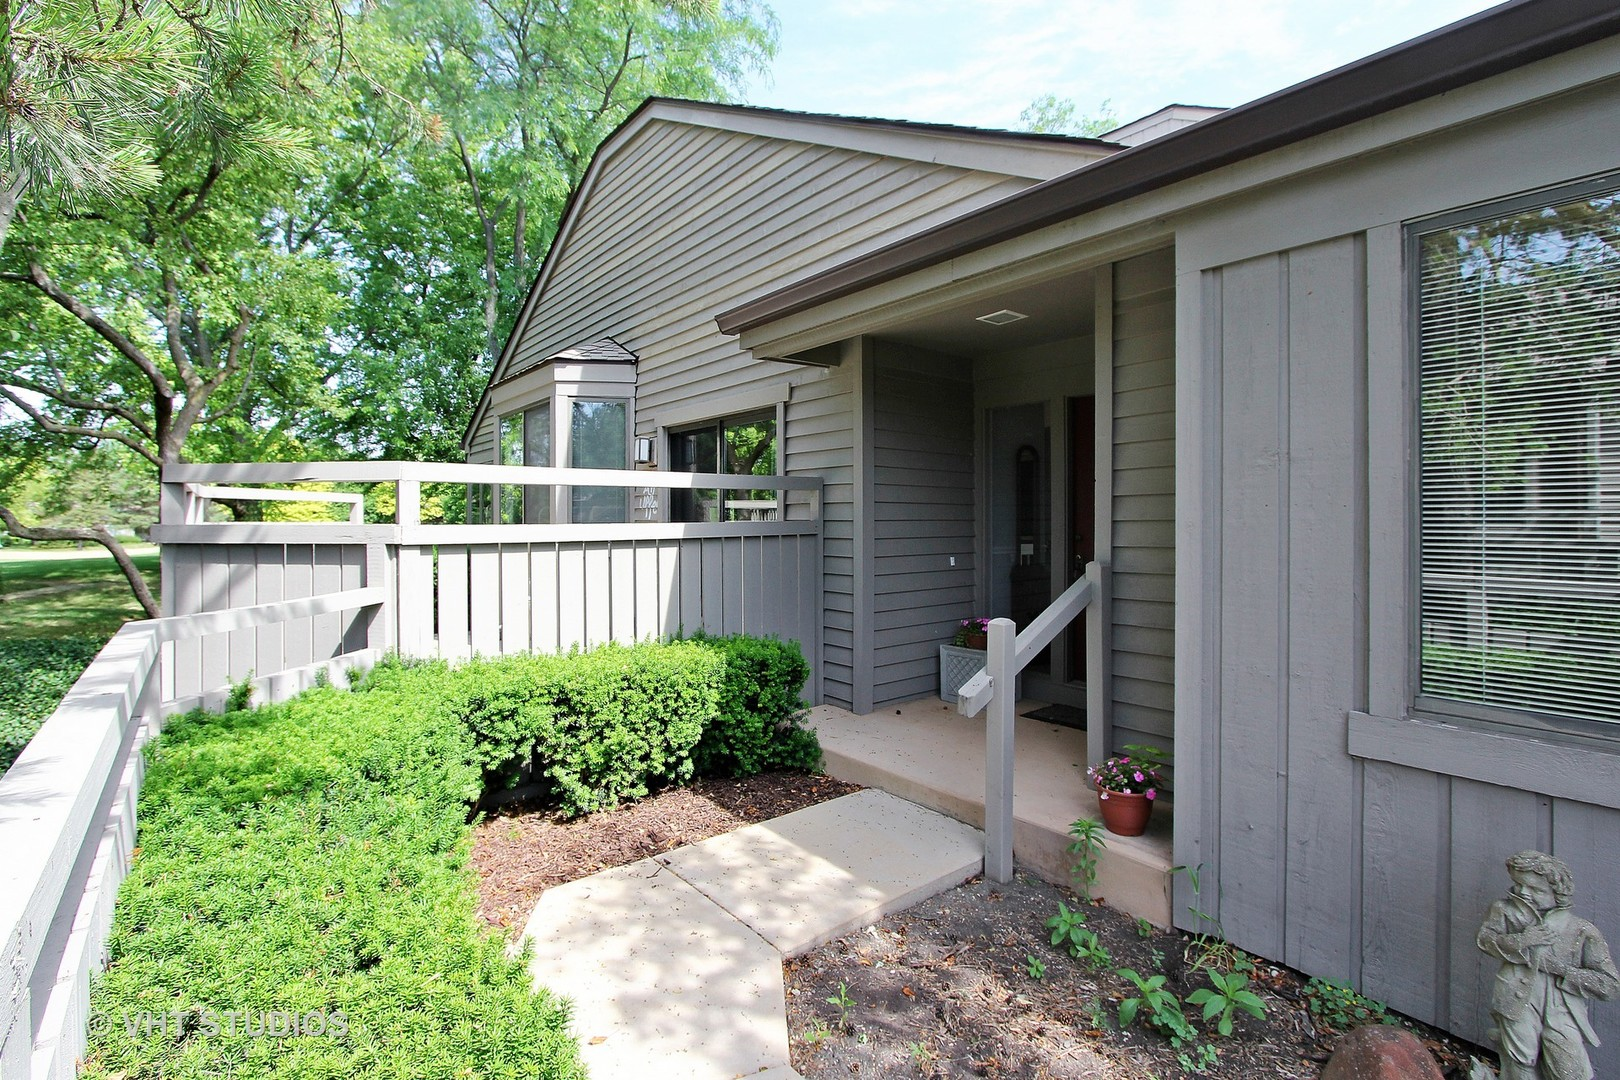 662 Shoreline RD, Barrington Area, IL, 60010, condos and townhomes for sale